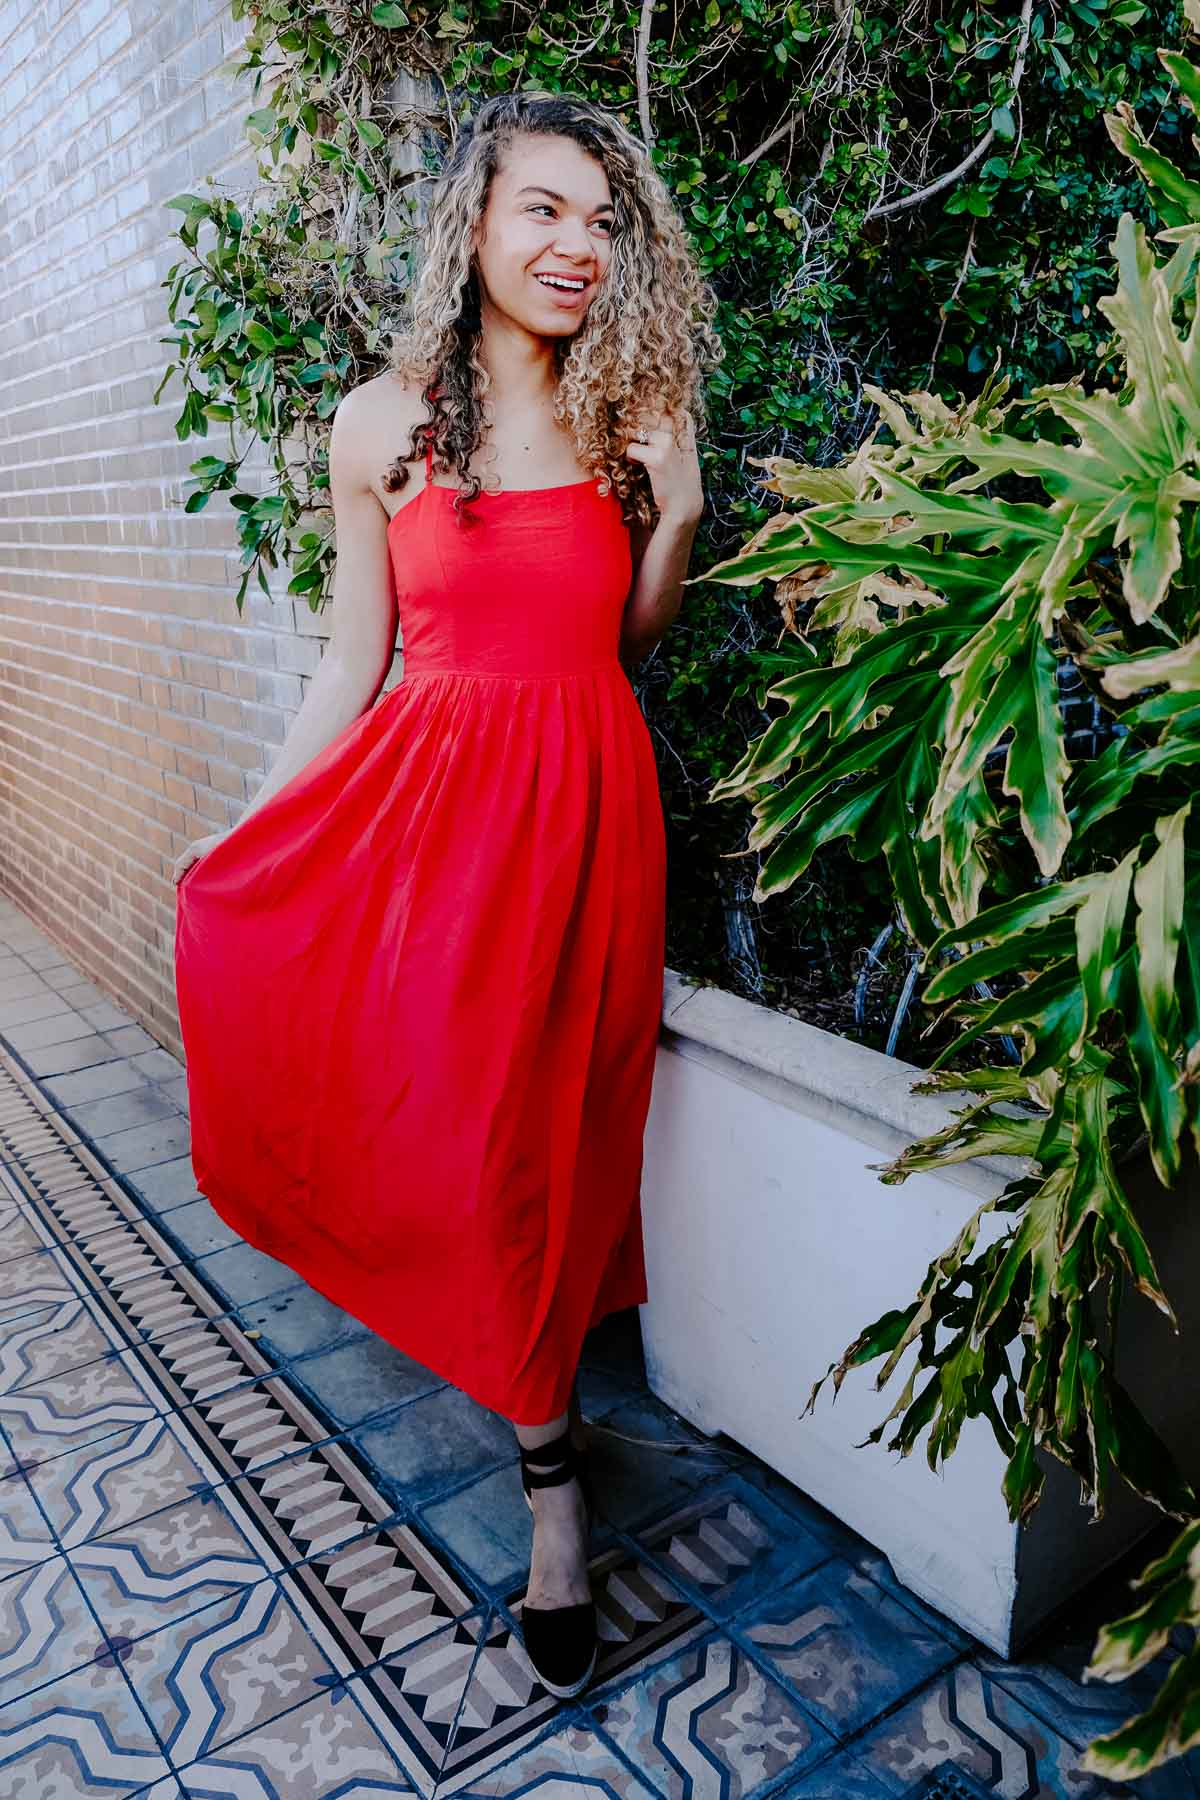 Planning a trip to LA and need to know what to wear? This post has the LA packing essentials that you need for a trip to Los Angeles! This maxi summer dress and espadrille outfit would be perfect to add to your summer outfits!